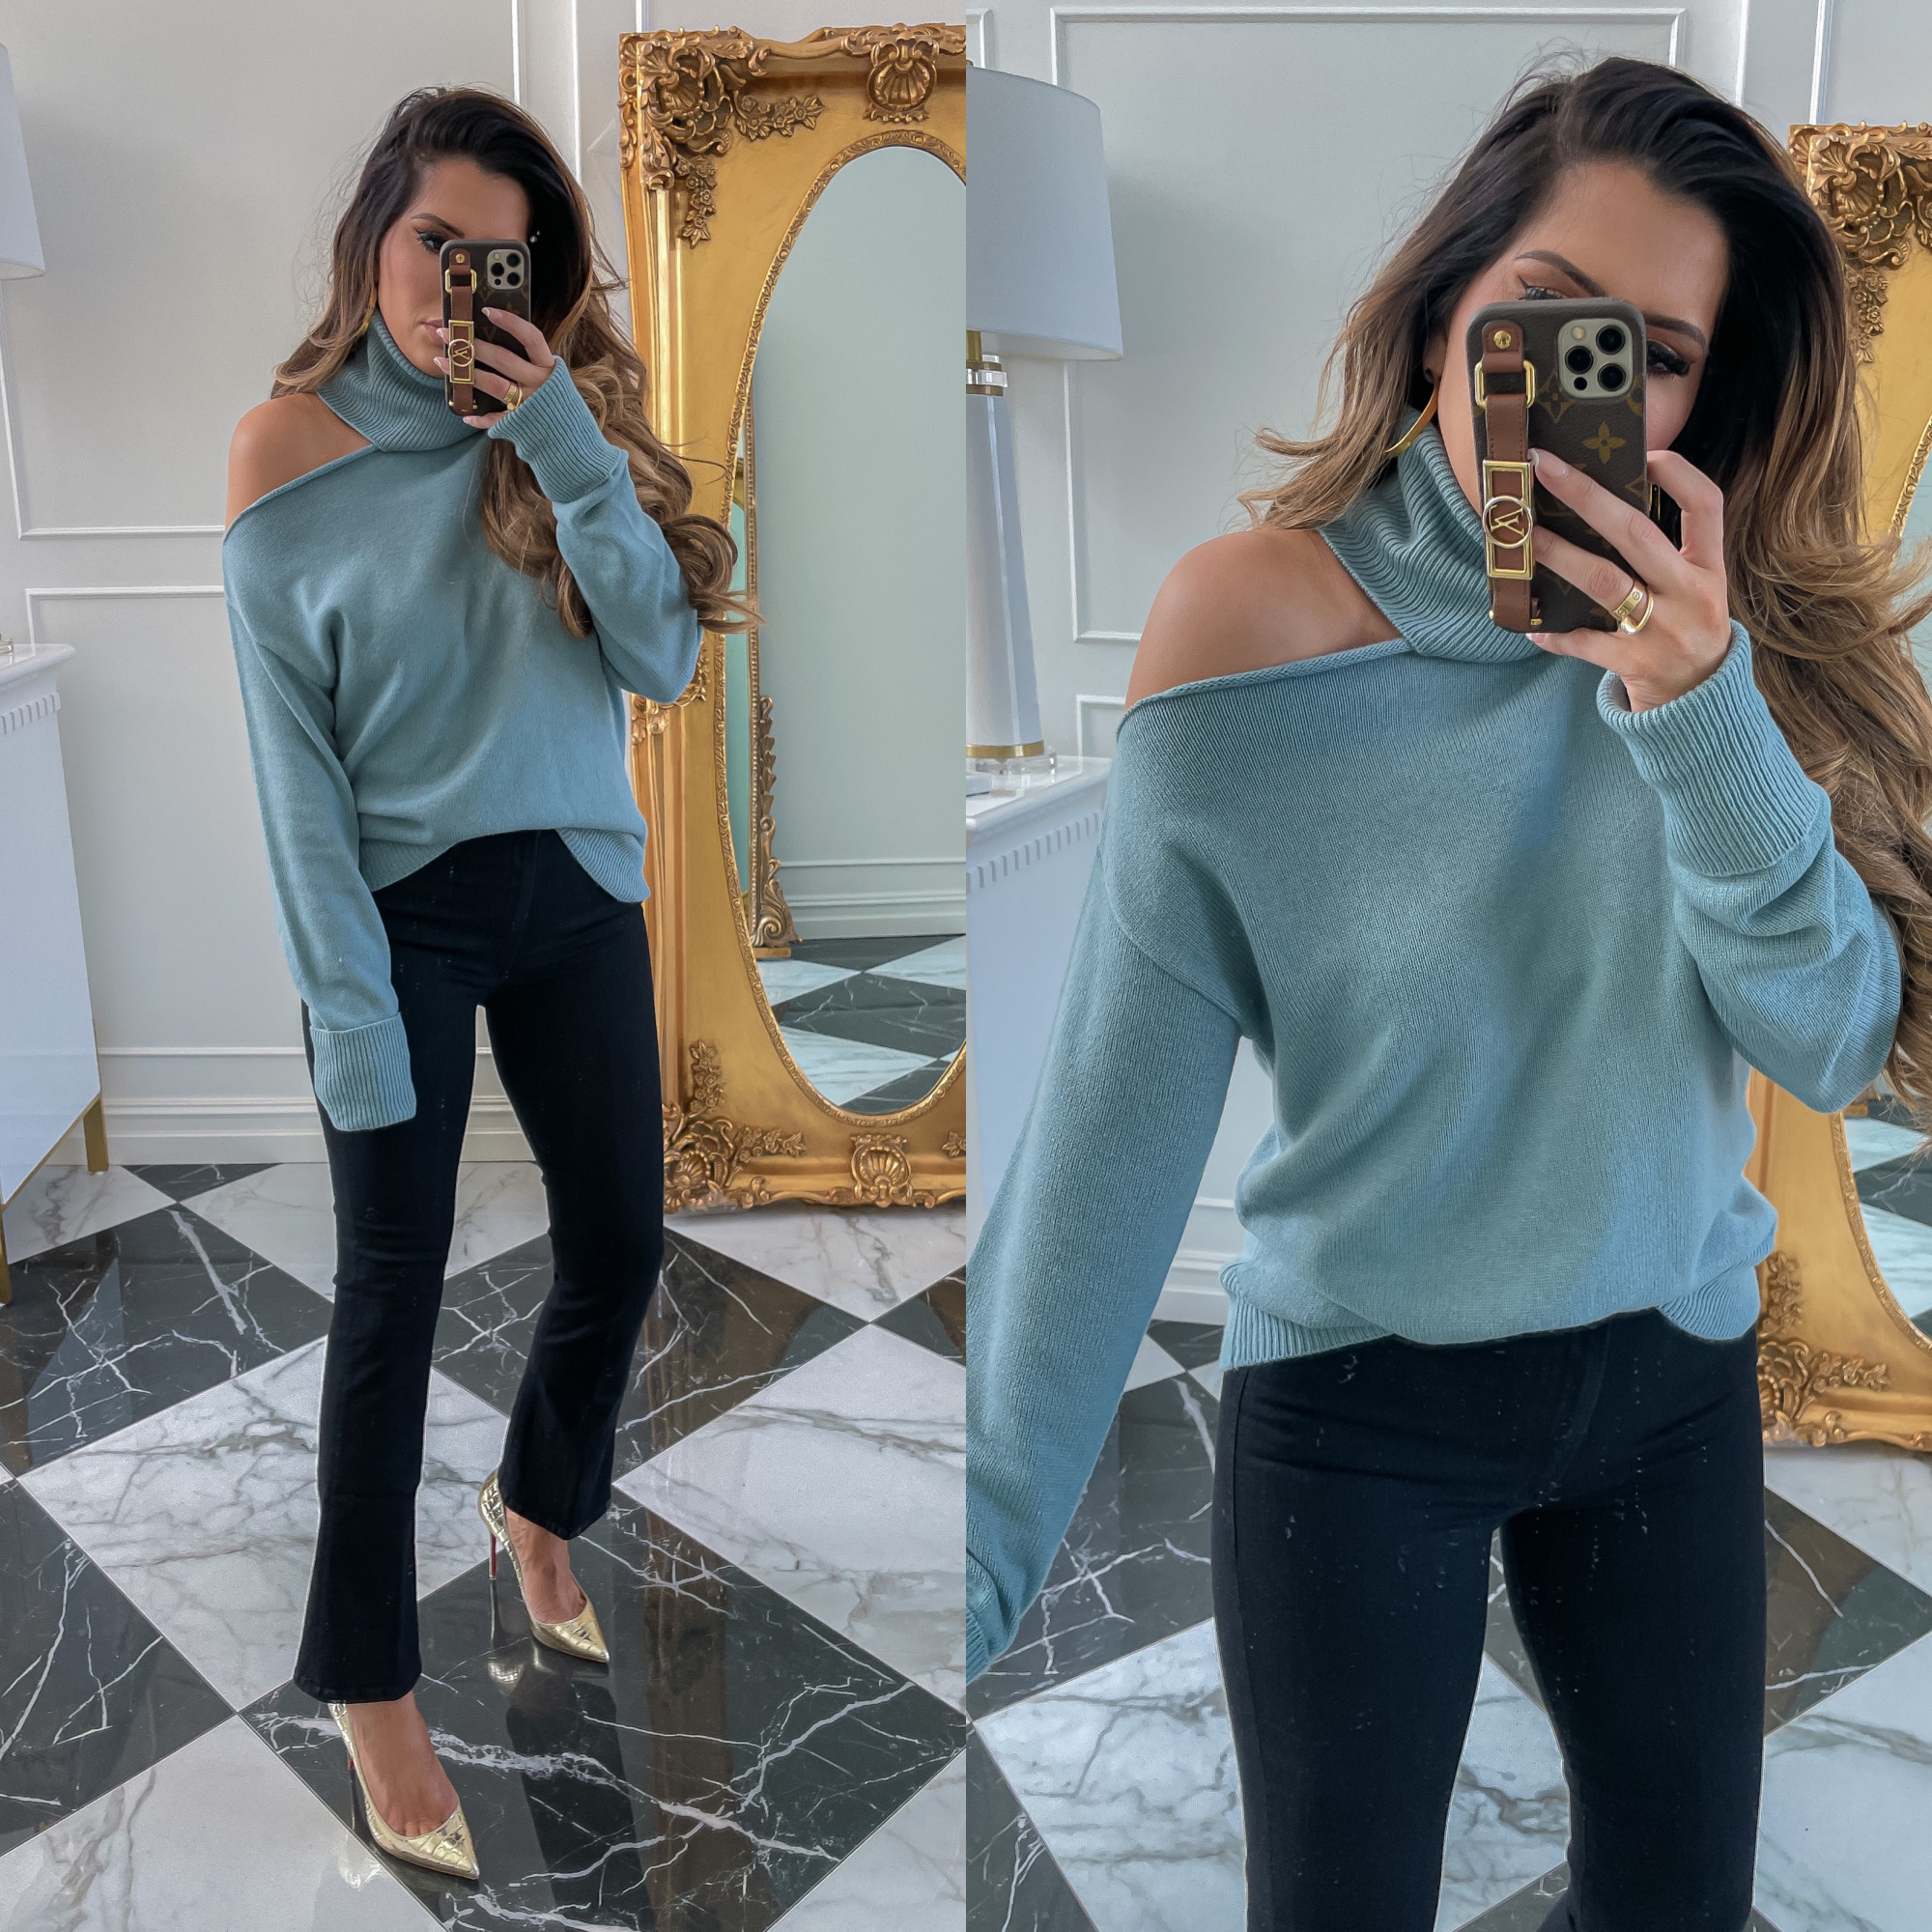 dstrom Anniversary Sale 2021 Picks, best of NSALE 2021 mother jeans, Nordstrom sale must haves blog post, Emily gemma7 \ Nordstrom Anniversary Sale US fashion blog, The Sweetest Thing: image of Emily Gemma wearing a Nordstrom cold shoulder turtleneck sweater, dark wash denim, and gold stilettos.